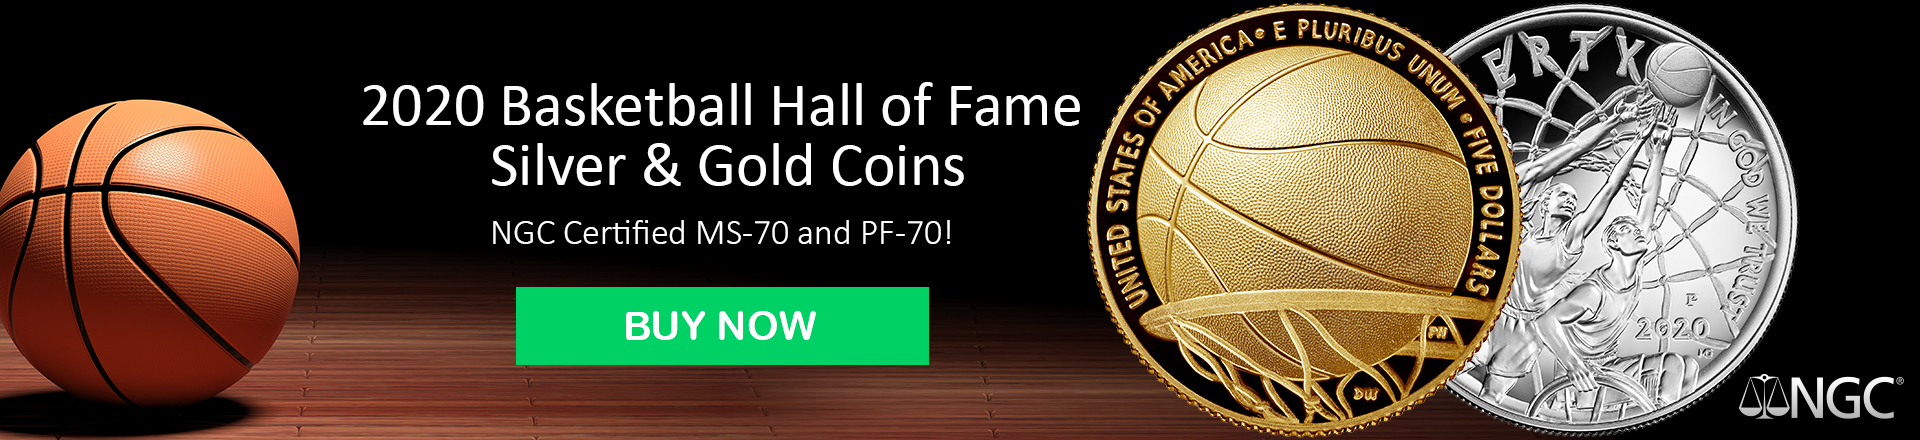 2020 Basketball Hall of Fame Gold and Silver Coins